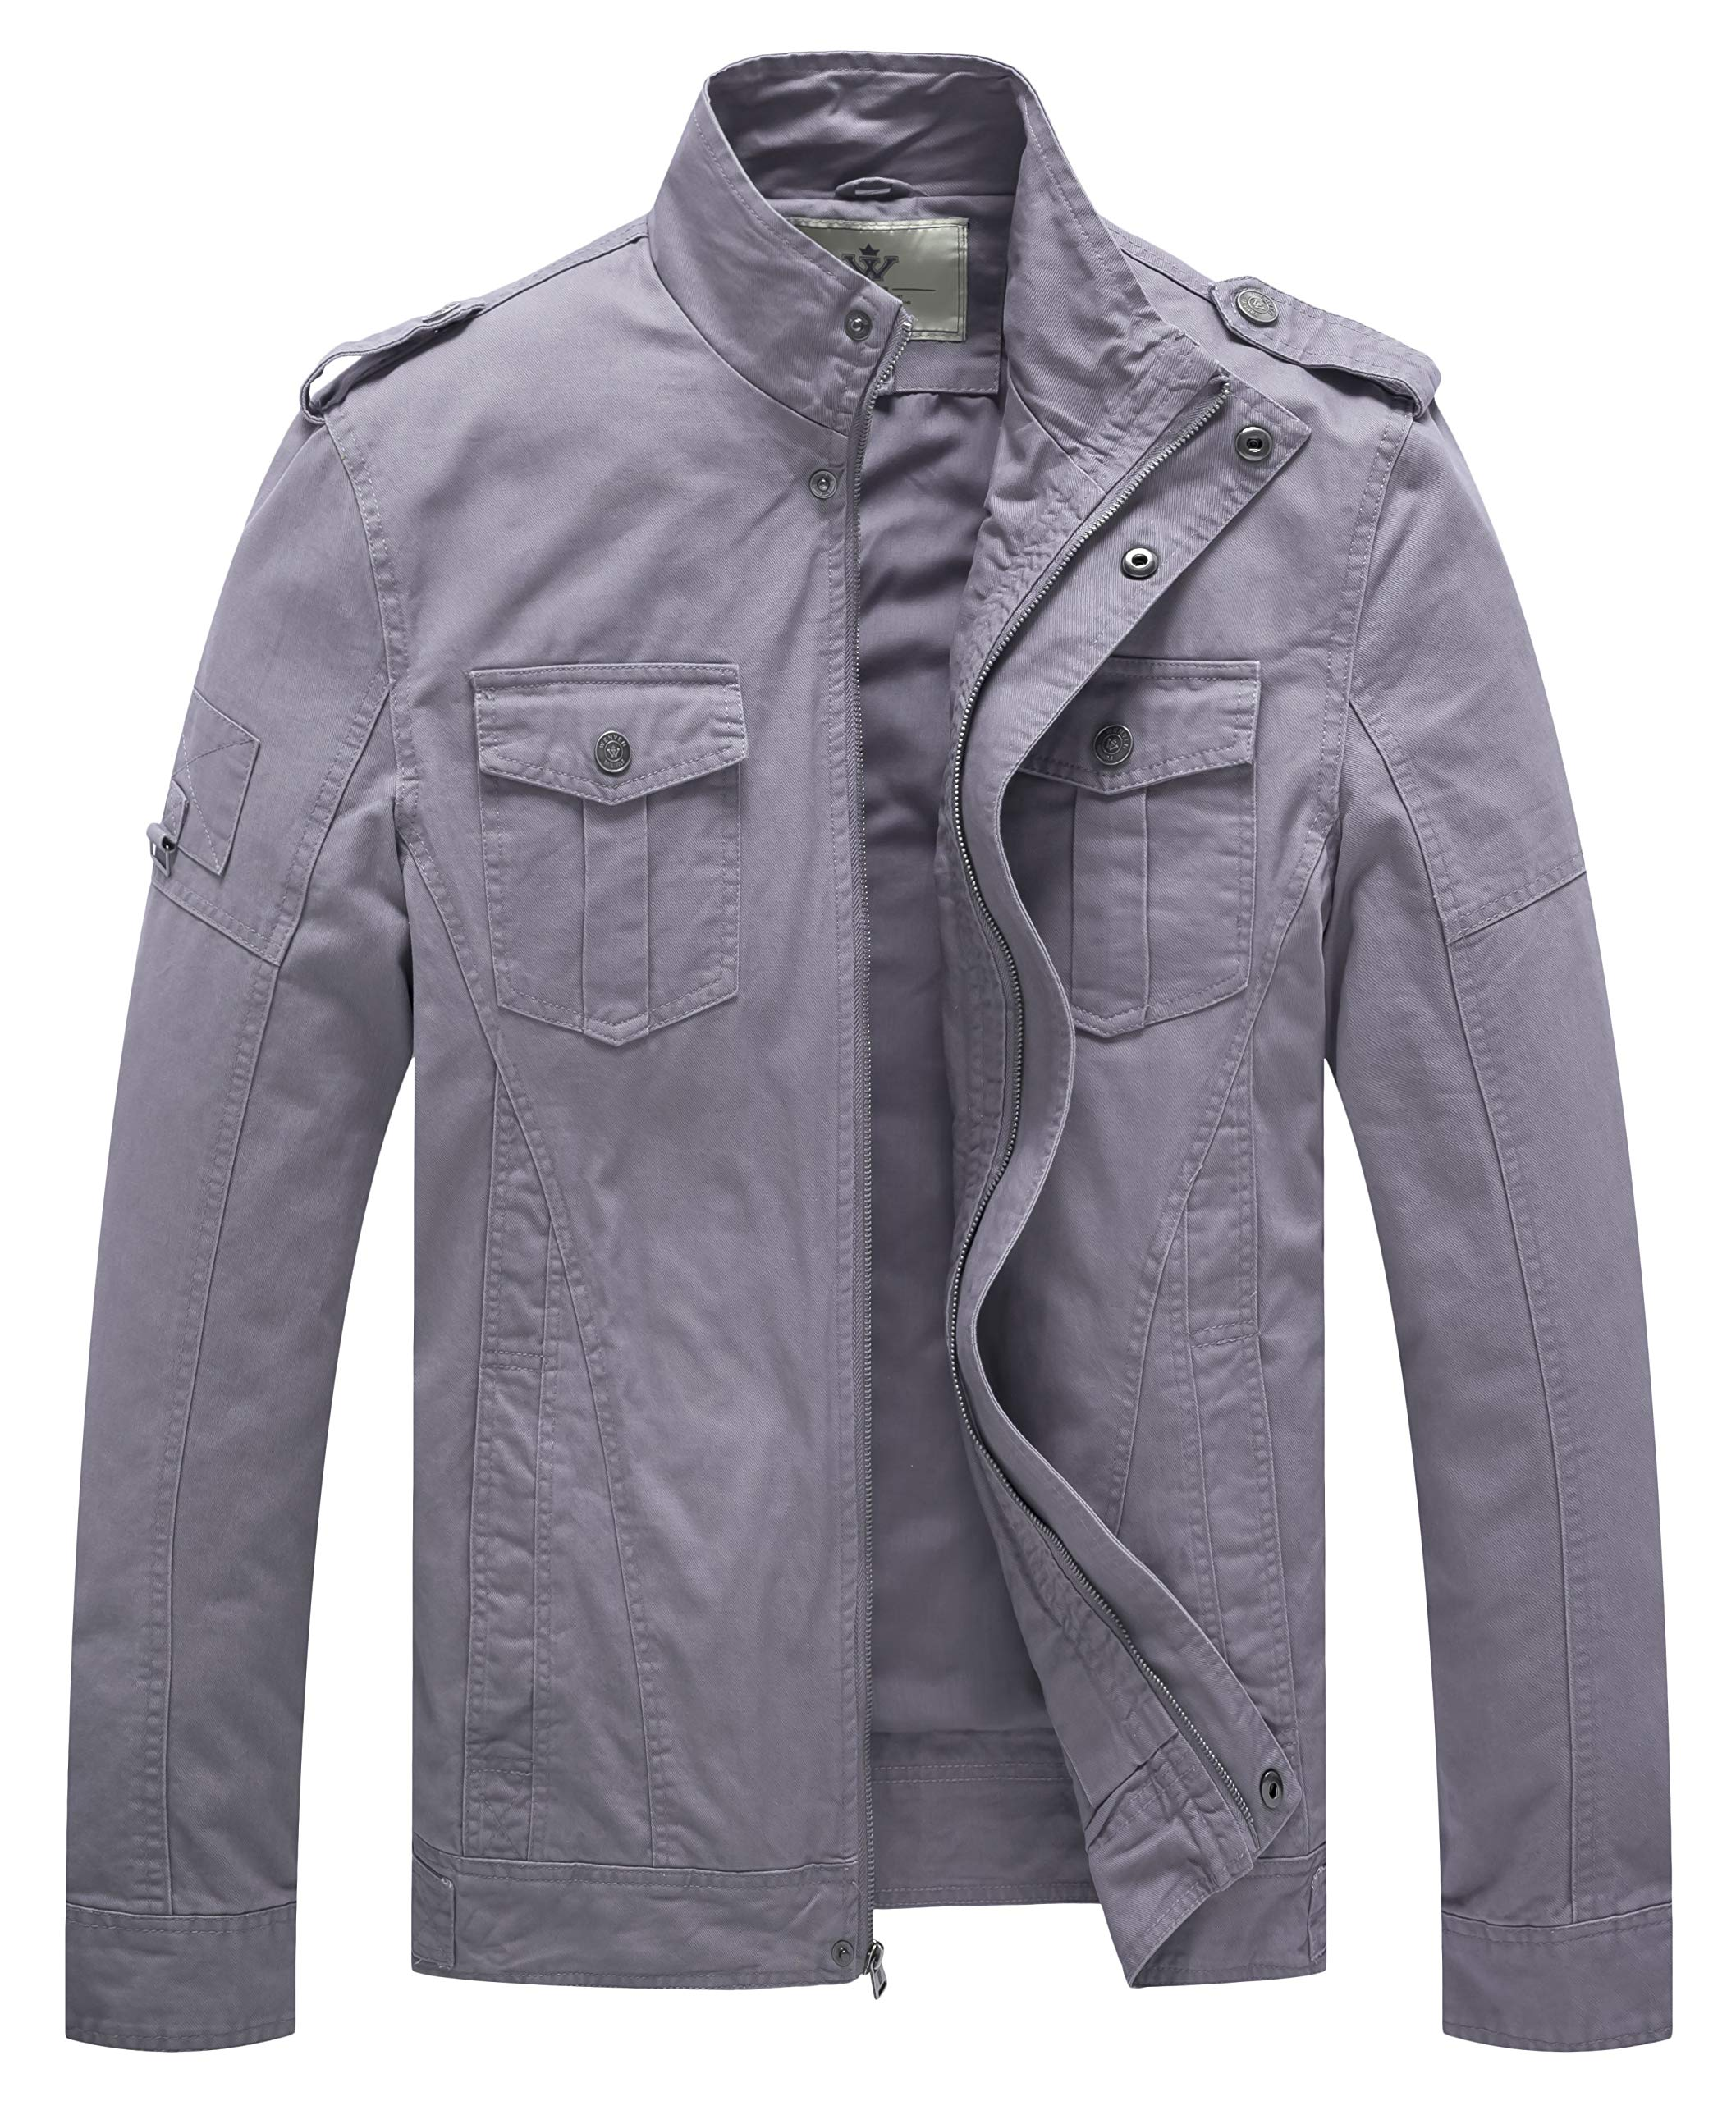 WenVen Men's Casual Cotton Military Jacket(Light Grey,M) by WenVen